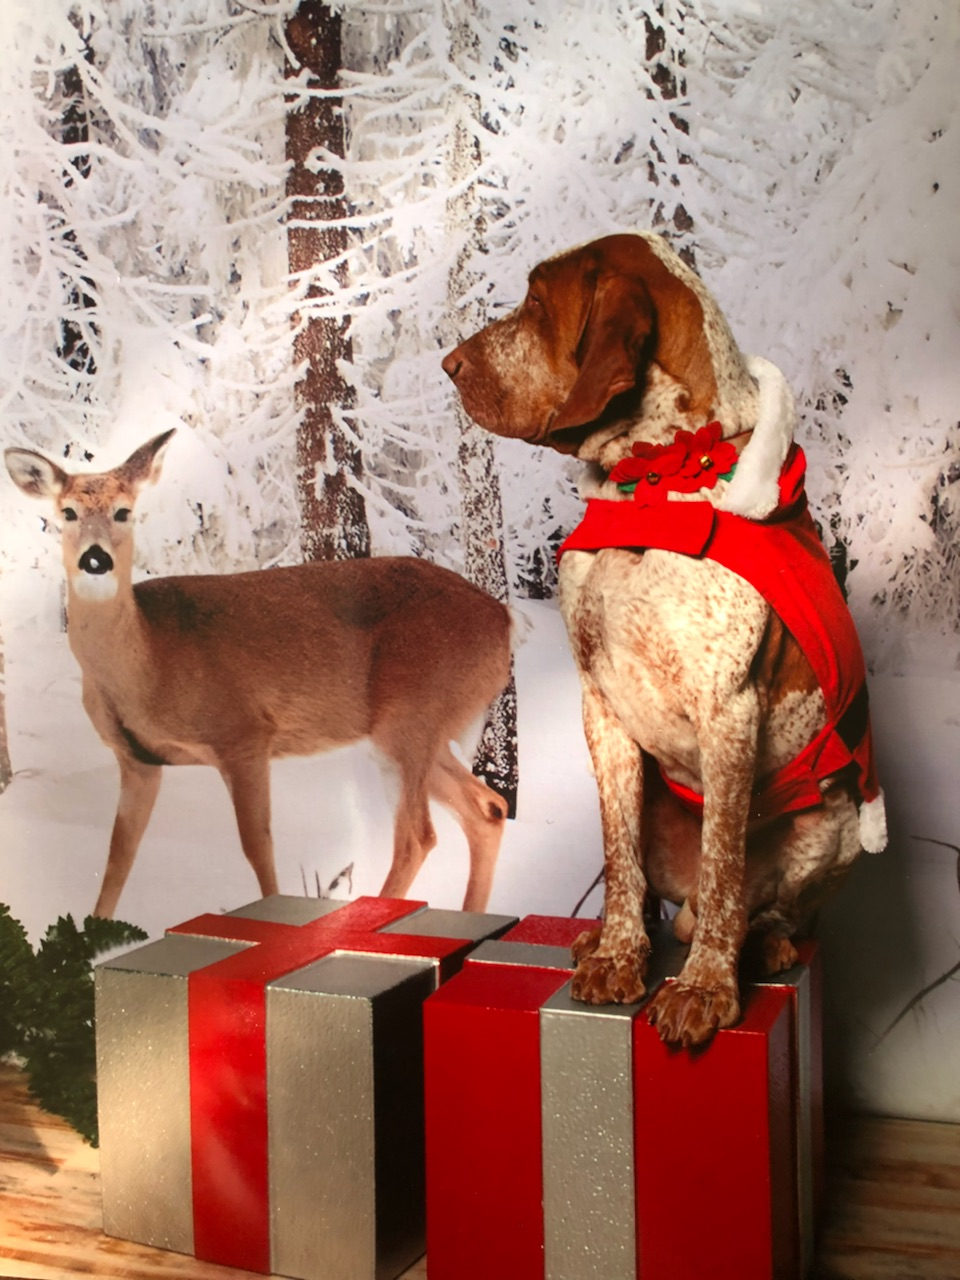 photo of a brown speckled large dog standing on present boxes with a deer snowy wooded background